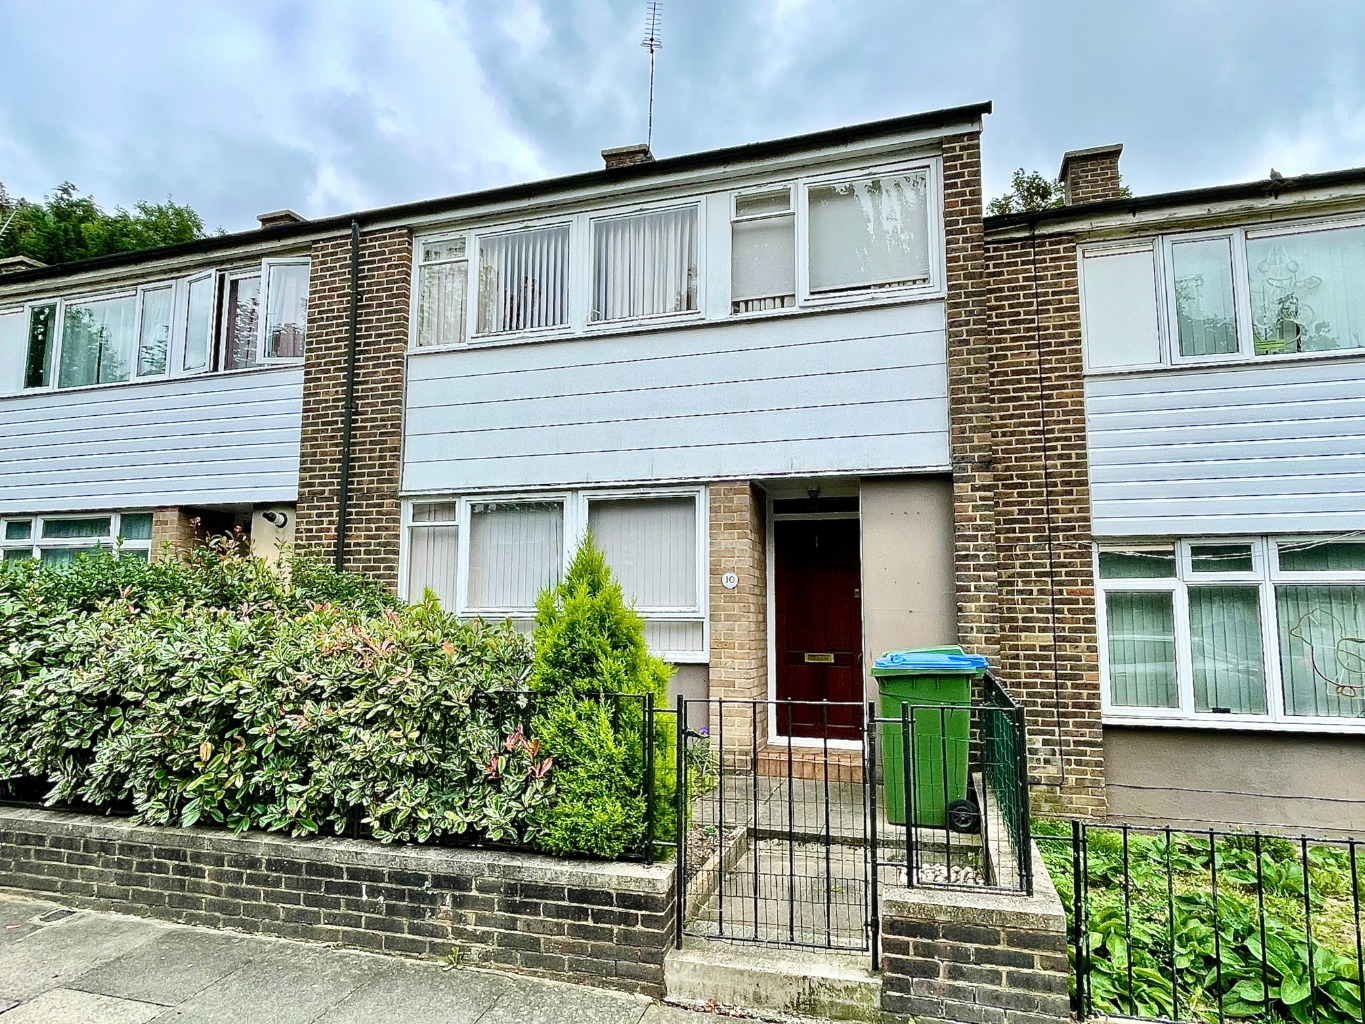 3 bed terraced house for sale in Godfrey Road, London - Property Image 1